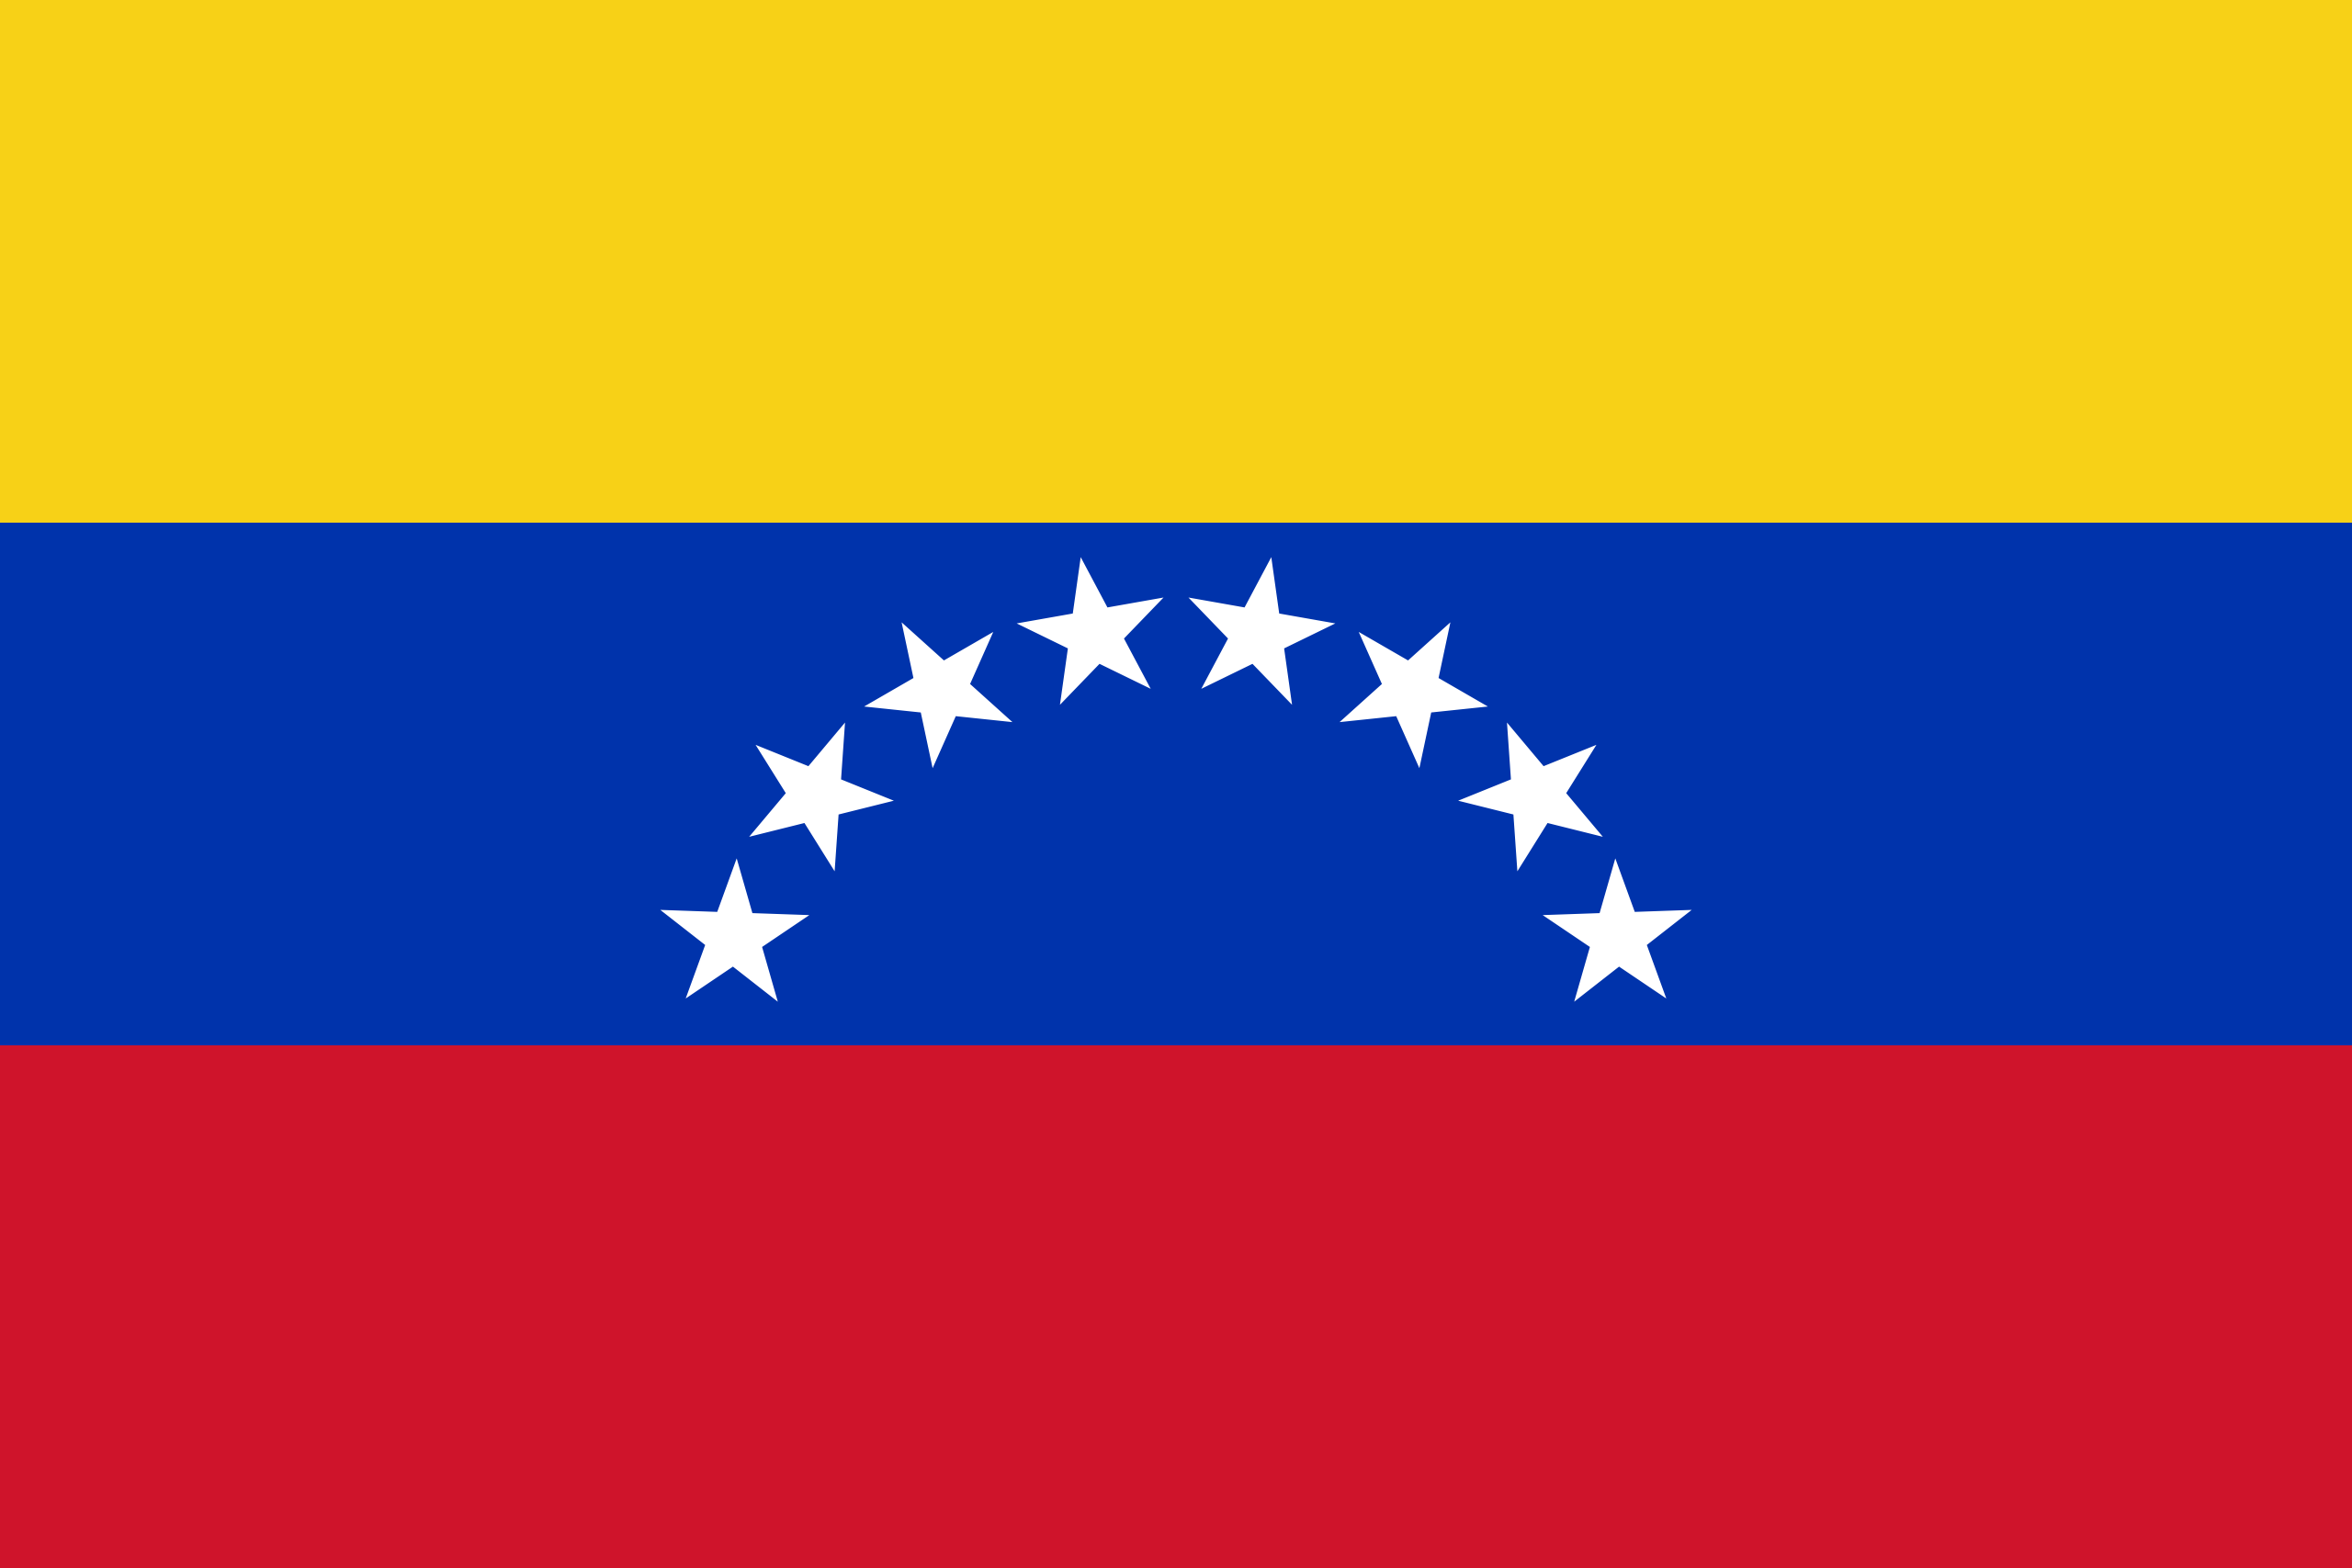 Venezuela Flag Venezuela Flag Venezuelan Flag Flags Of The World